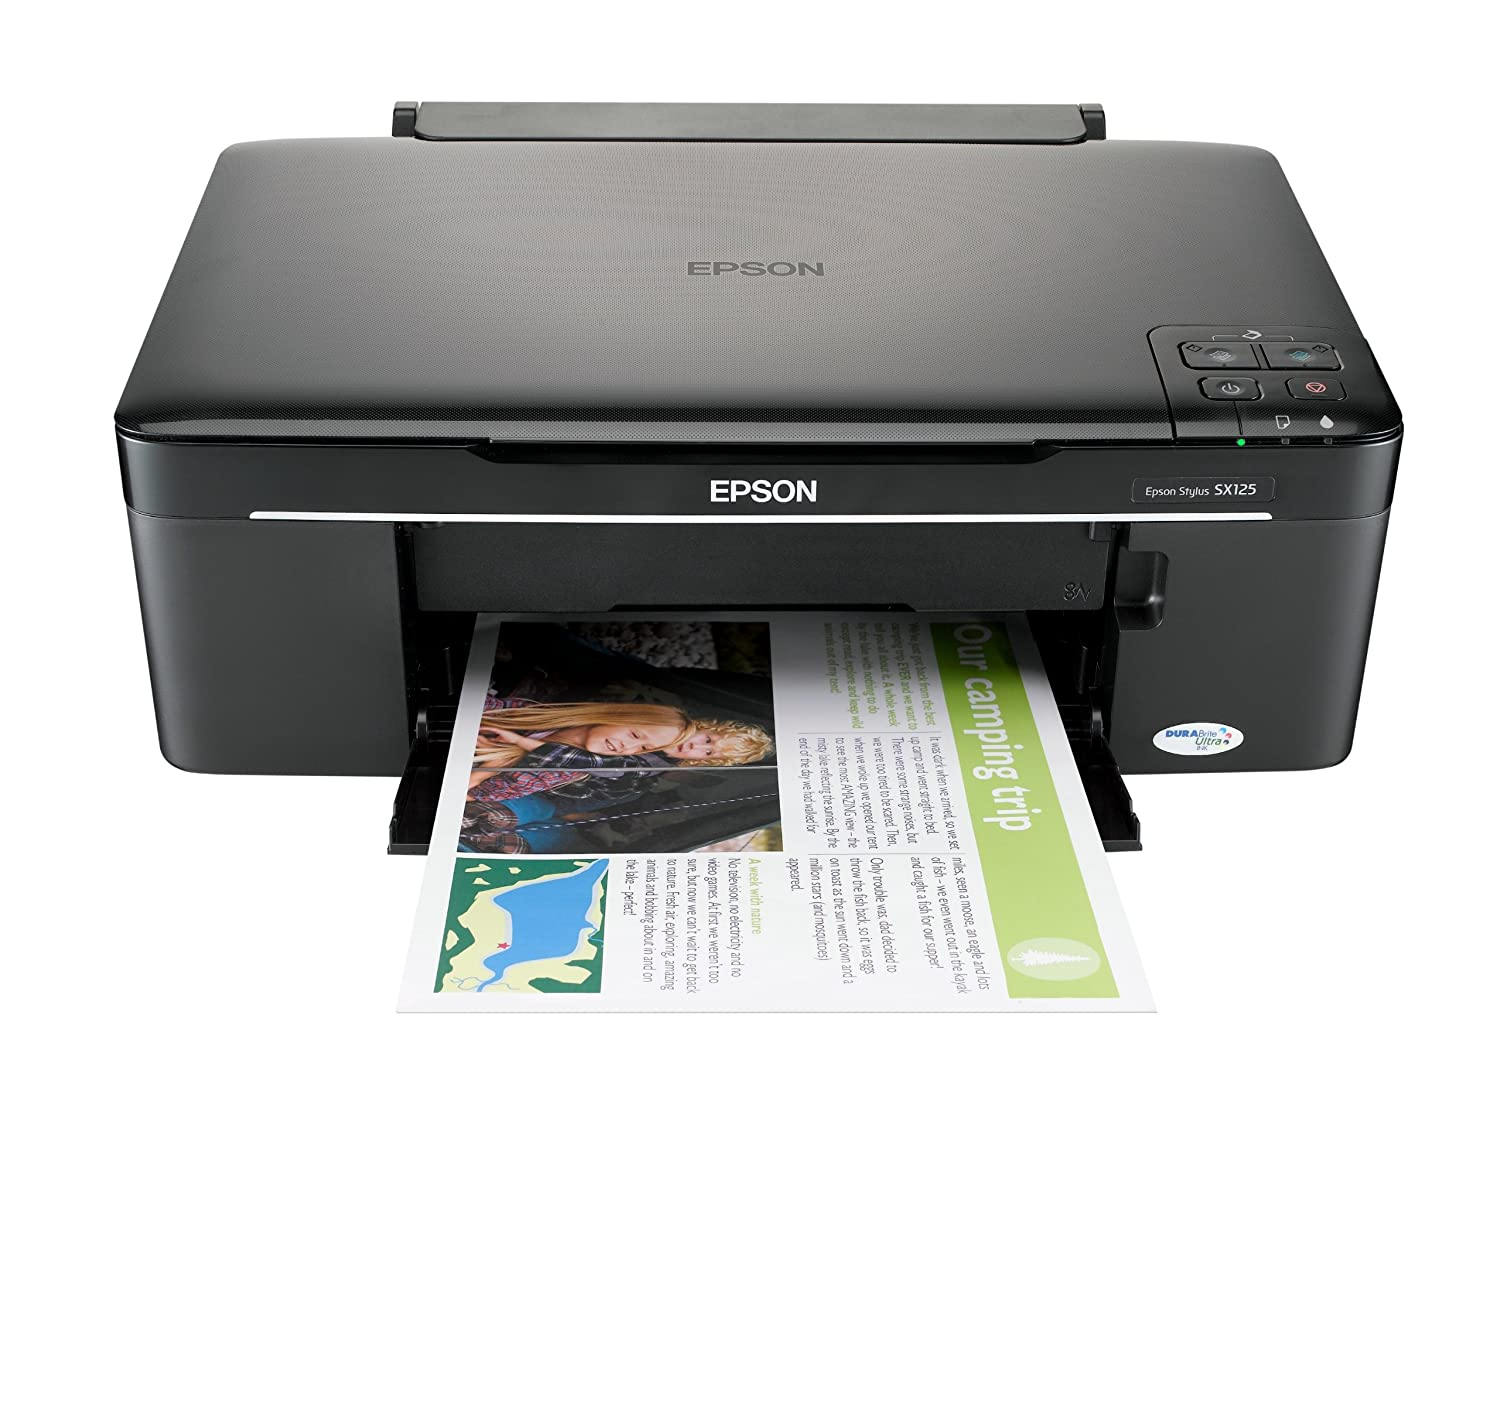 Epson Stylus SX125 All-in-One (Print, Scan, Copy) Printer